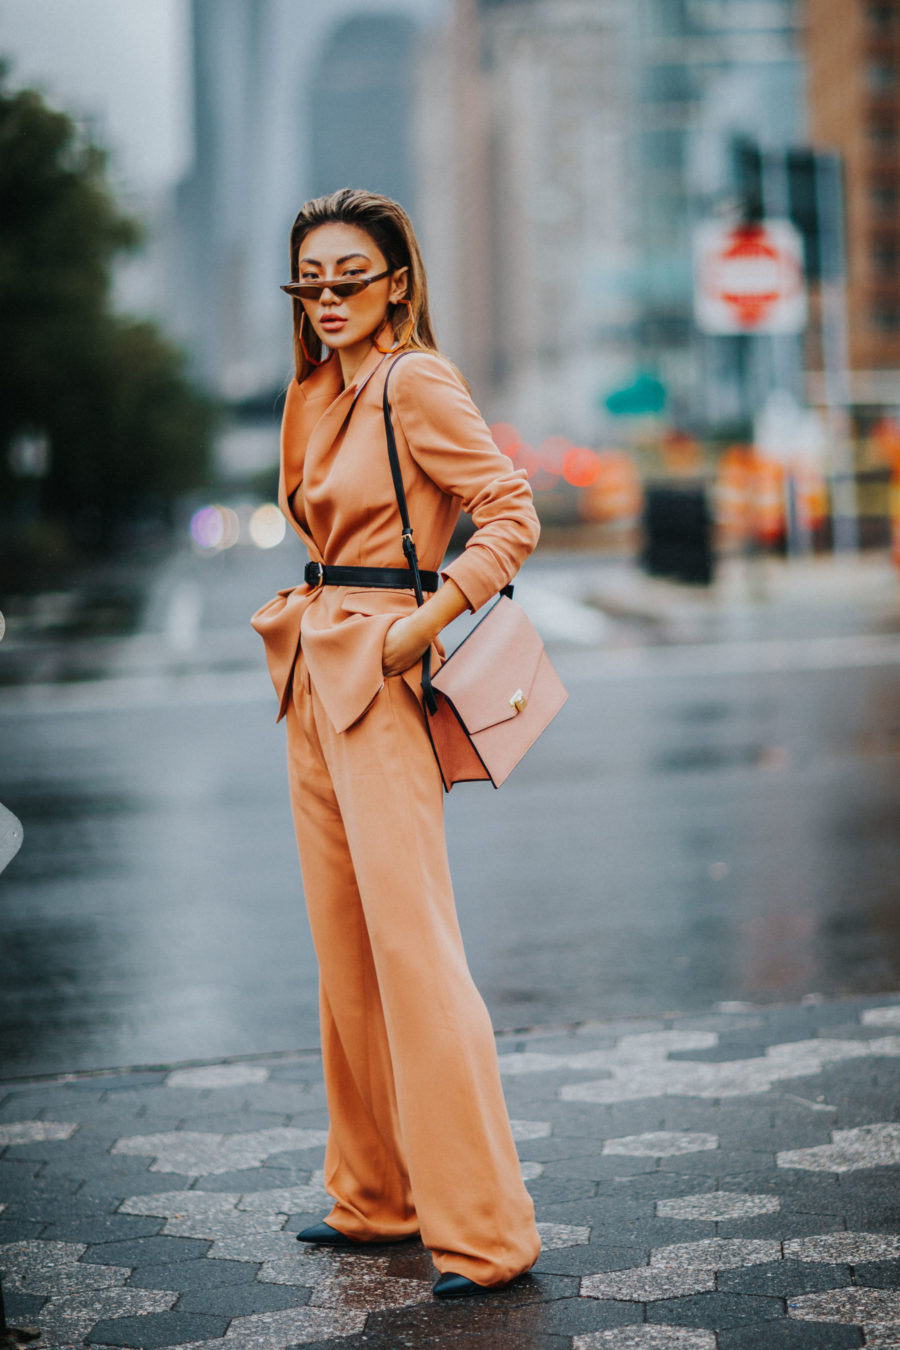 biggest street style trends of spring 2019, beige fashion trend, nude trend // Notjessfashion.com